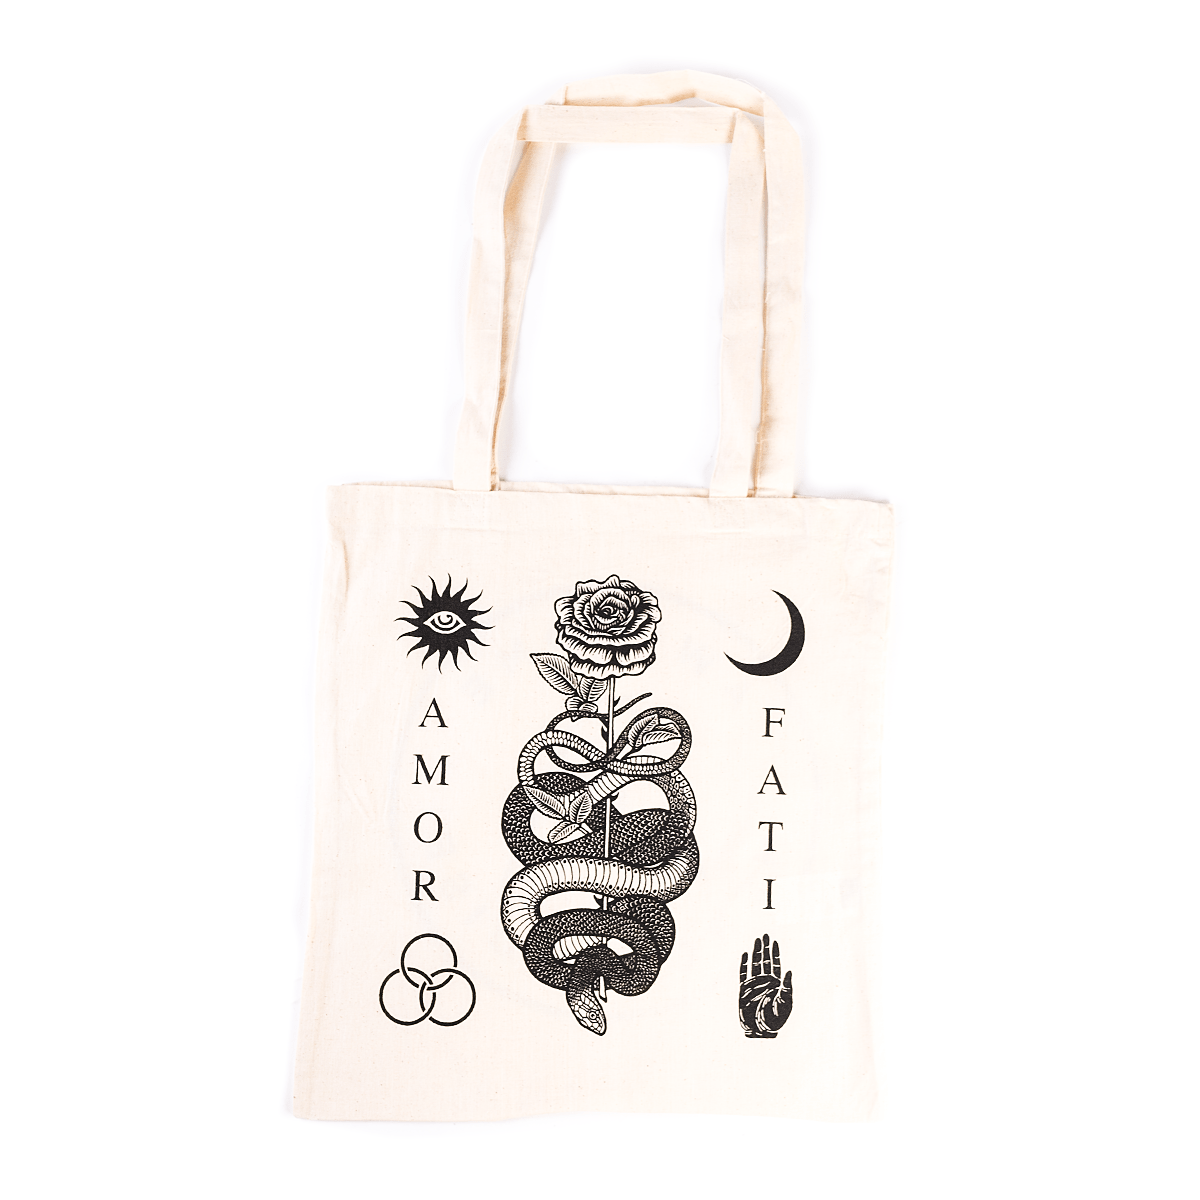 Lloyd Stratton, illustrator, The Travelling Canvas, Awesome Merchandise, Tote bag